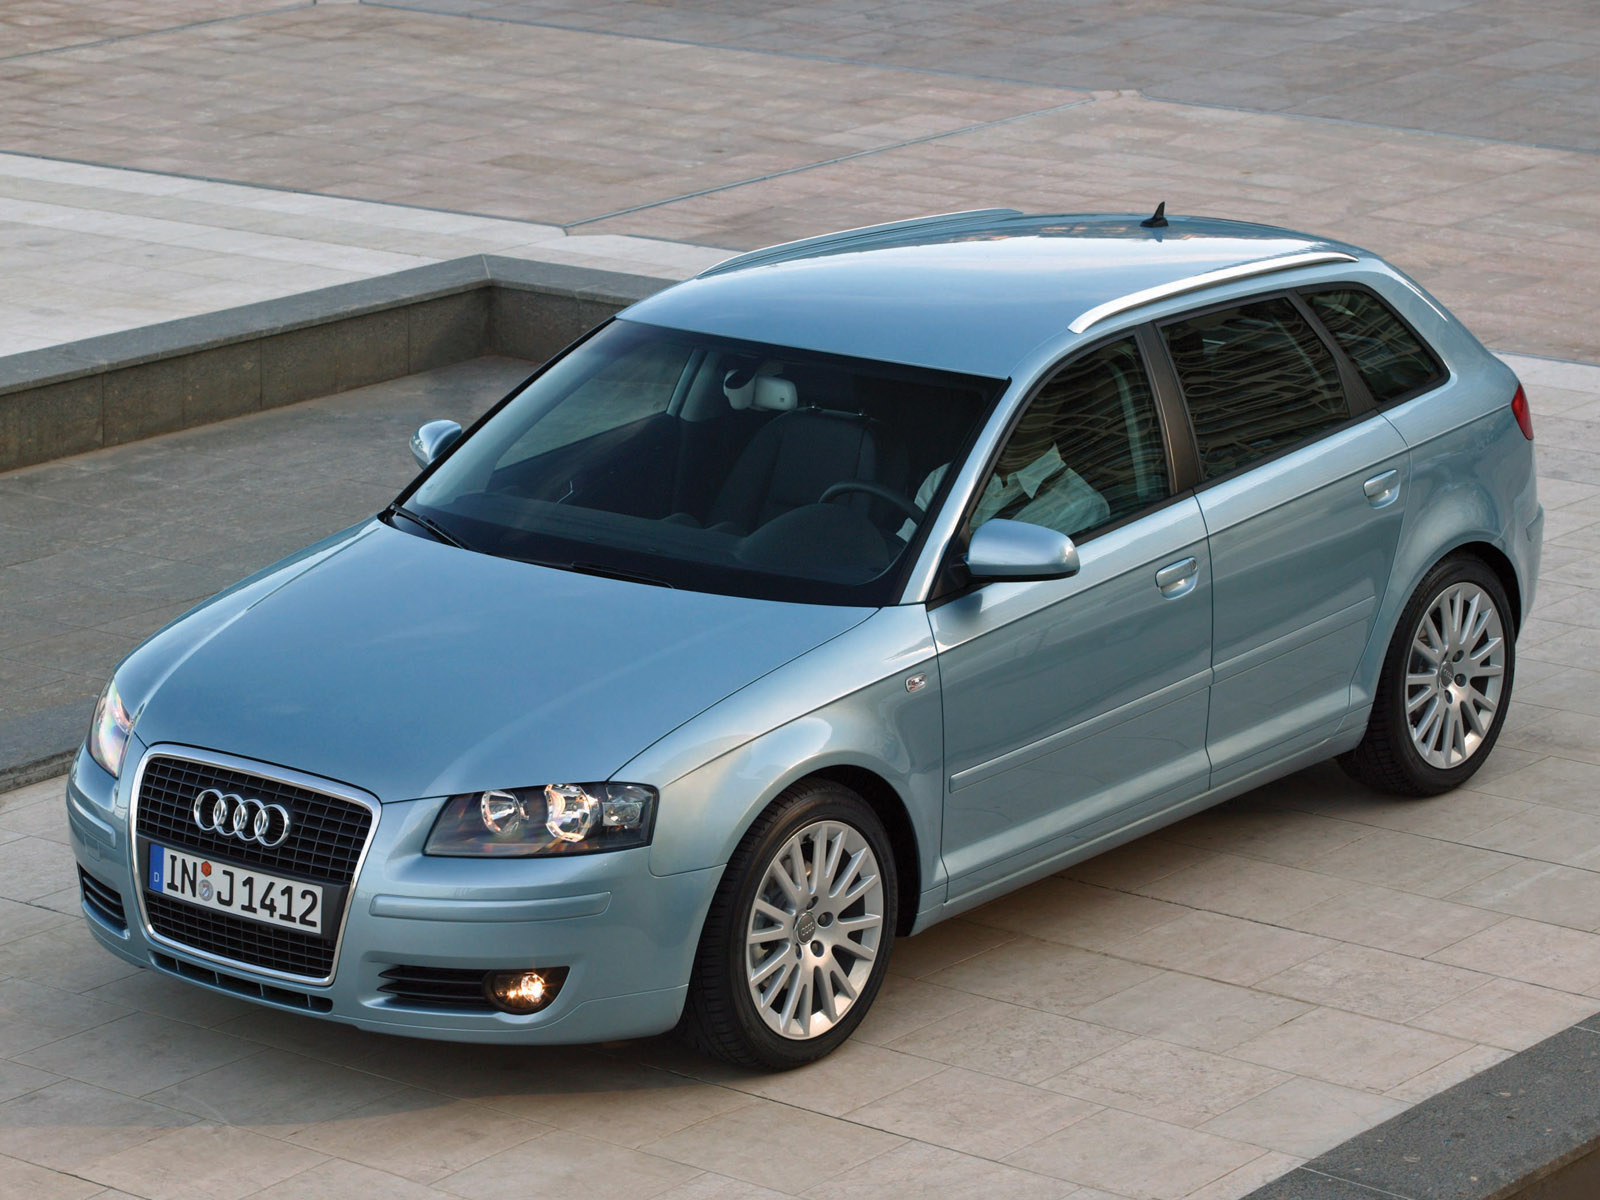 audi a3 sportback 2005 audi a3 sportback 2005 photo 11 car in pictures car photo gallery. Black Bedroom Furniture Sets. Home Design Ideas